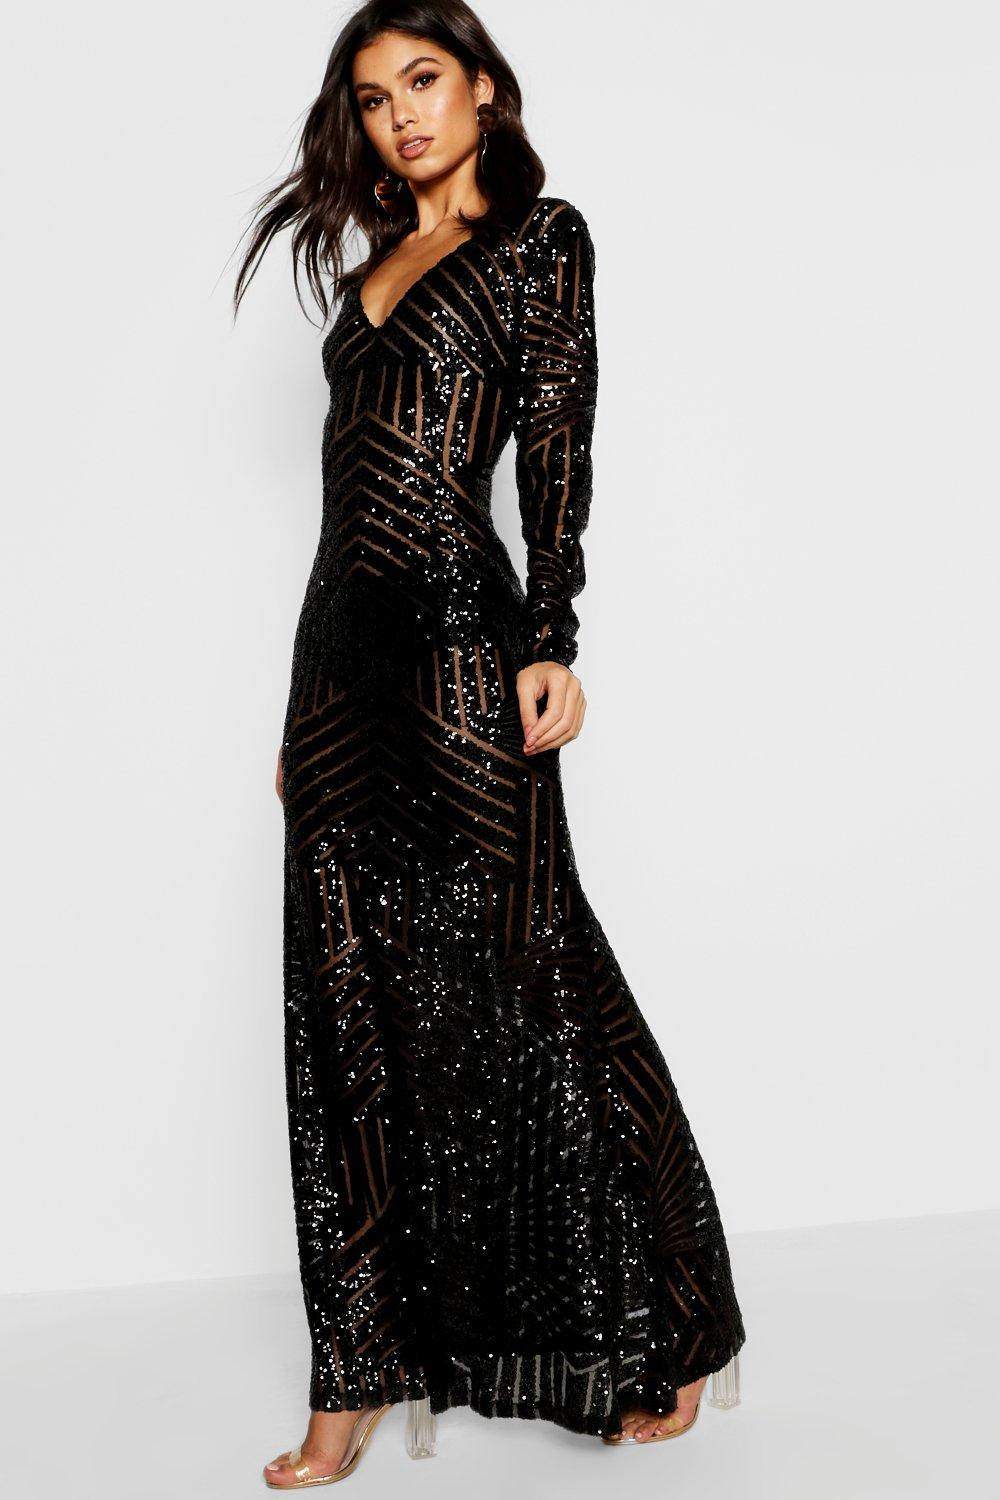 top-rated professional 60% clearance retail prices Boutique Sequin & Mesh Maxi Dress